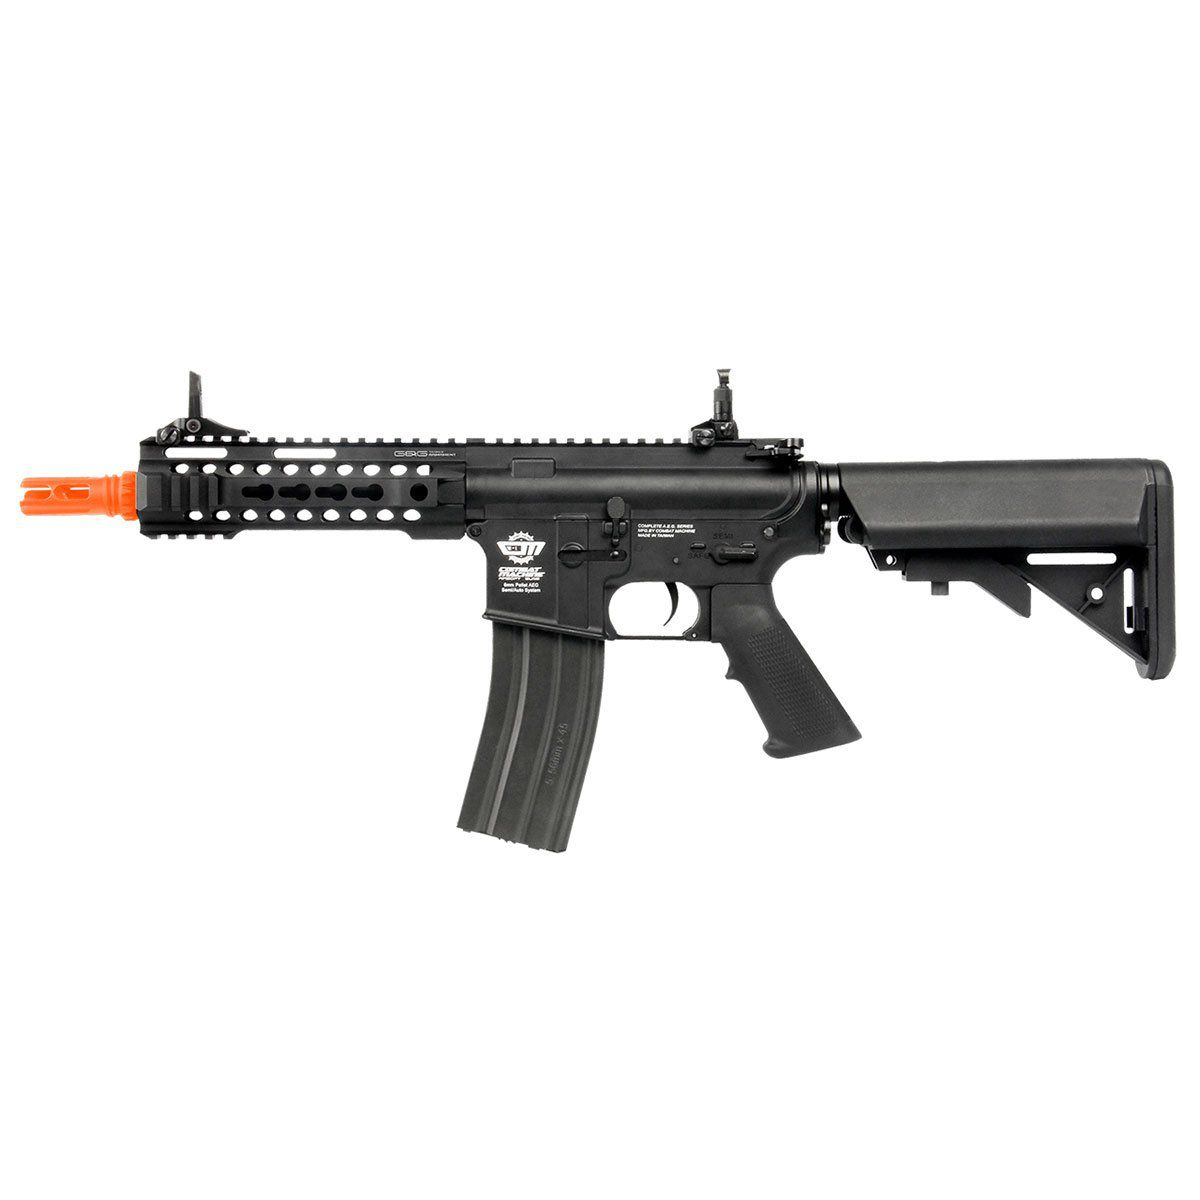 Rifle Airsoft G&G CM16 300 BOT com Mosfet Calibre 6mm